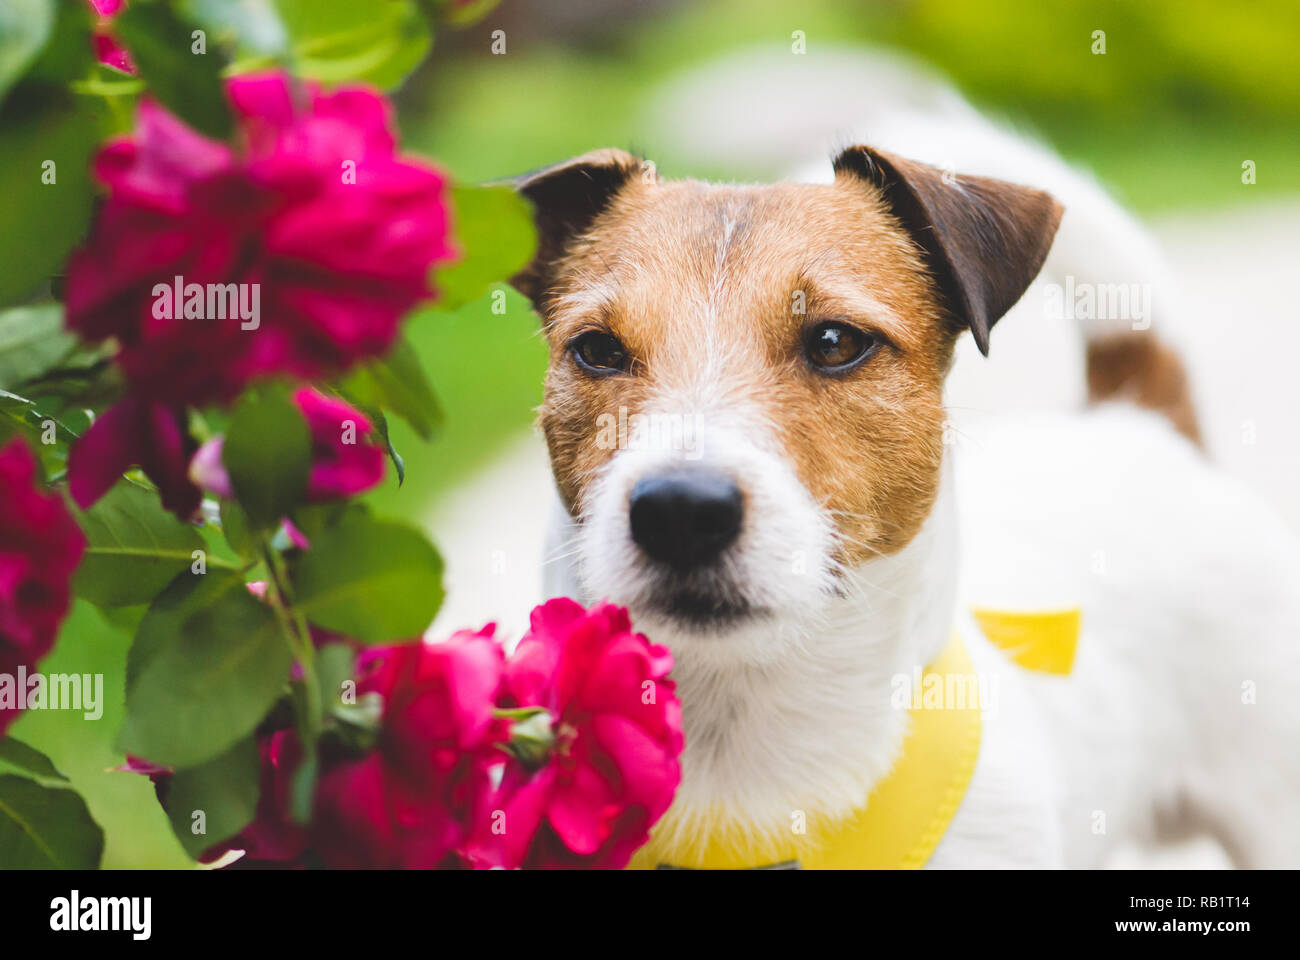 Romantic scene with lovely dog and flowers - Stock Image